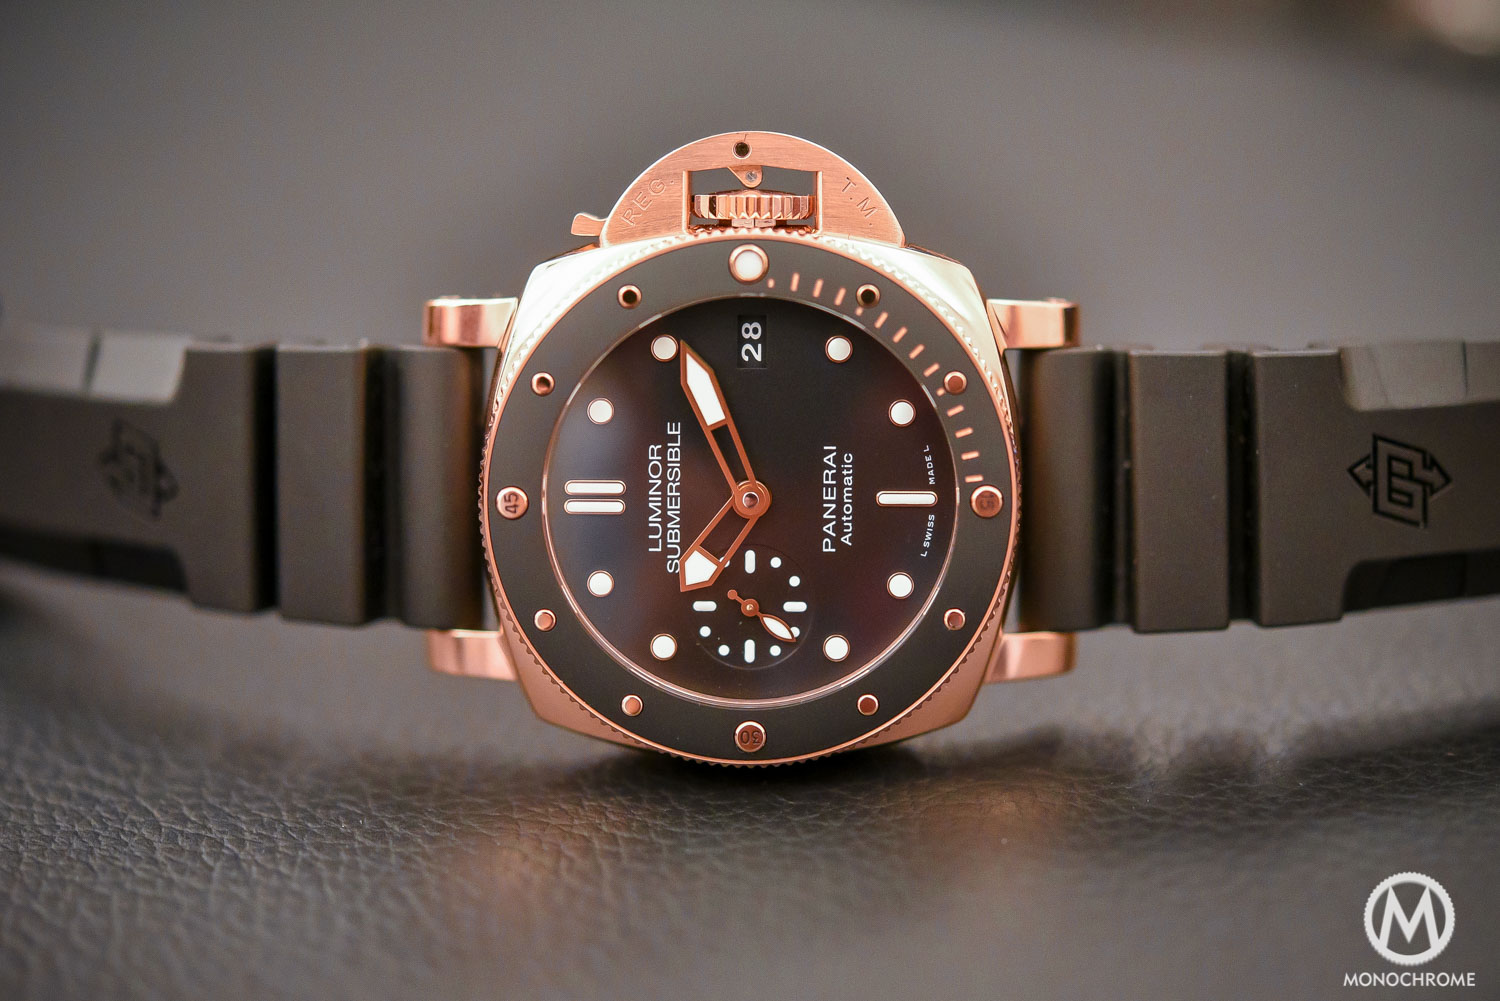 Panerai Luminor Submersible 1950 3 Days Automatic Oro Rosso 42mm PAM00684 - SIHH 2017